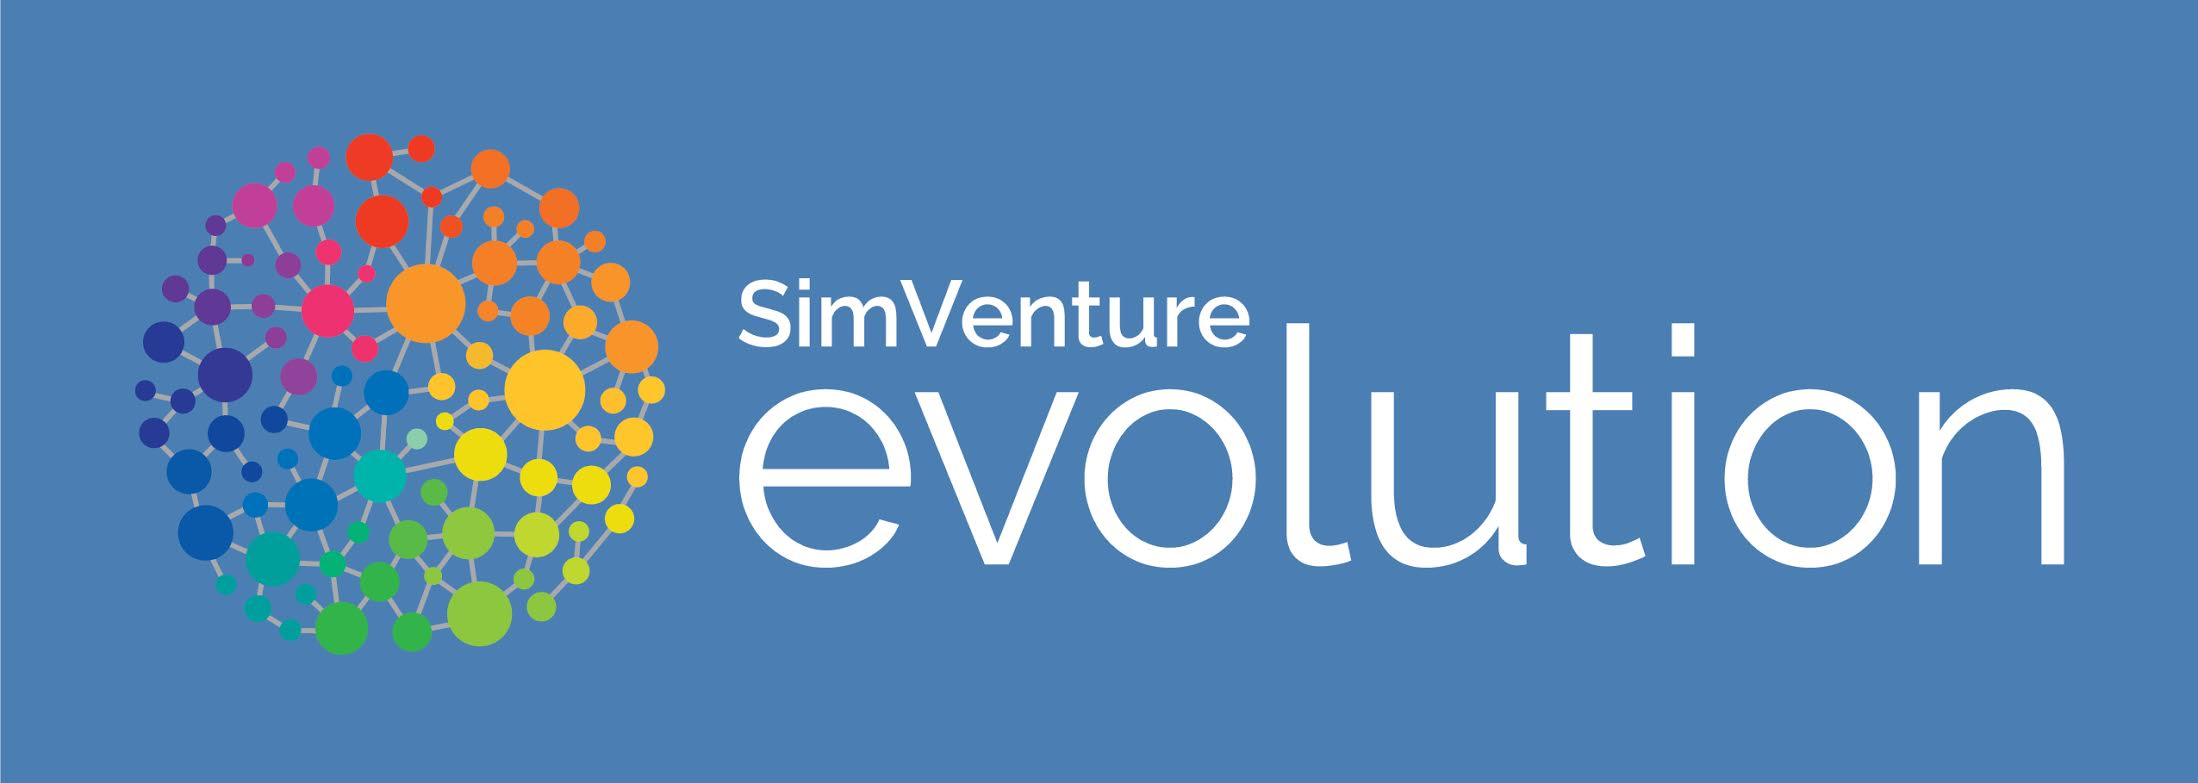 SimVenture-Evolution-JPeg-image-HighRes